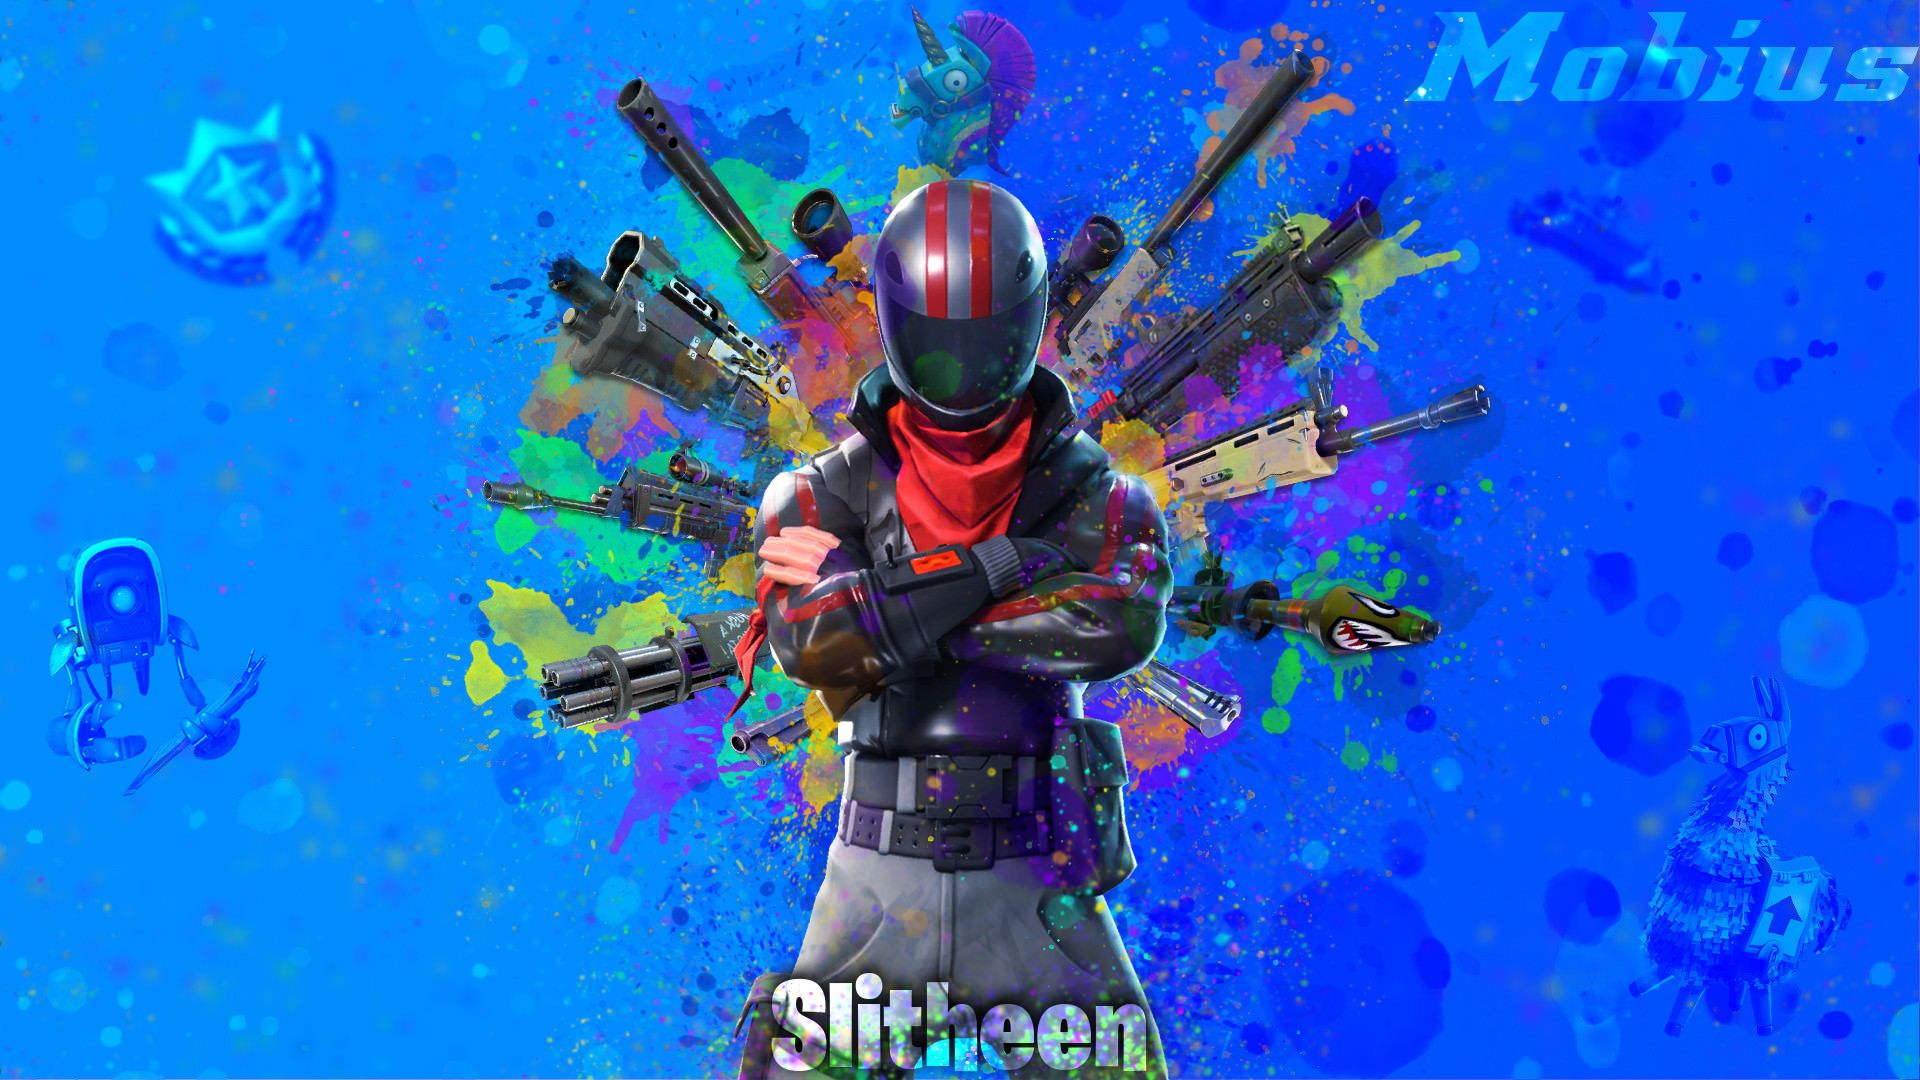 Hd Wallpapers Fortnite Posted By Sarah Simpson